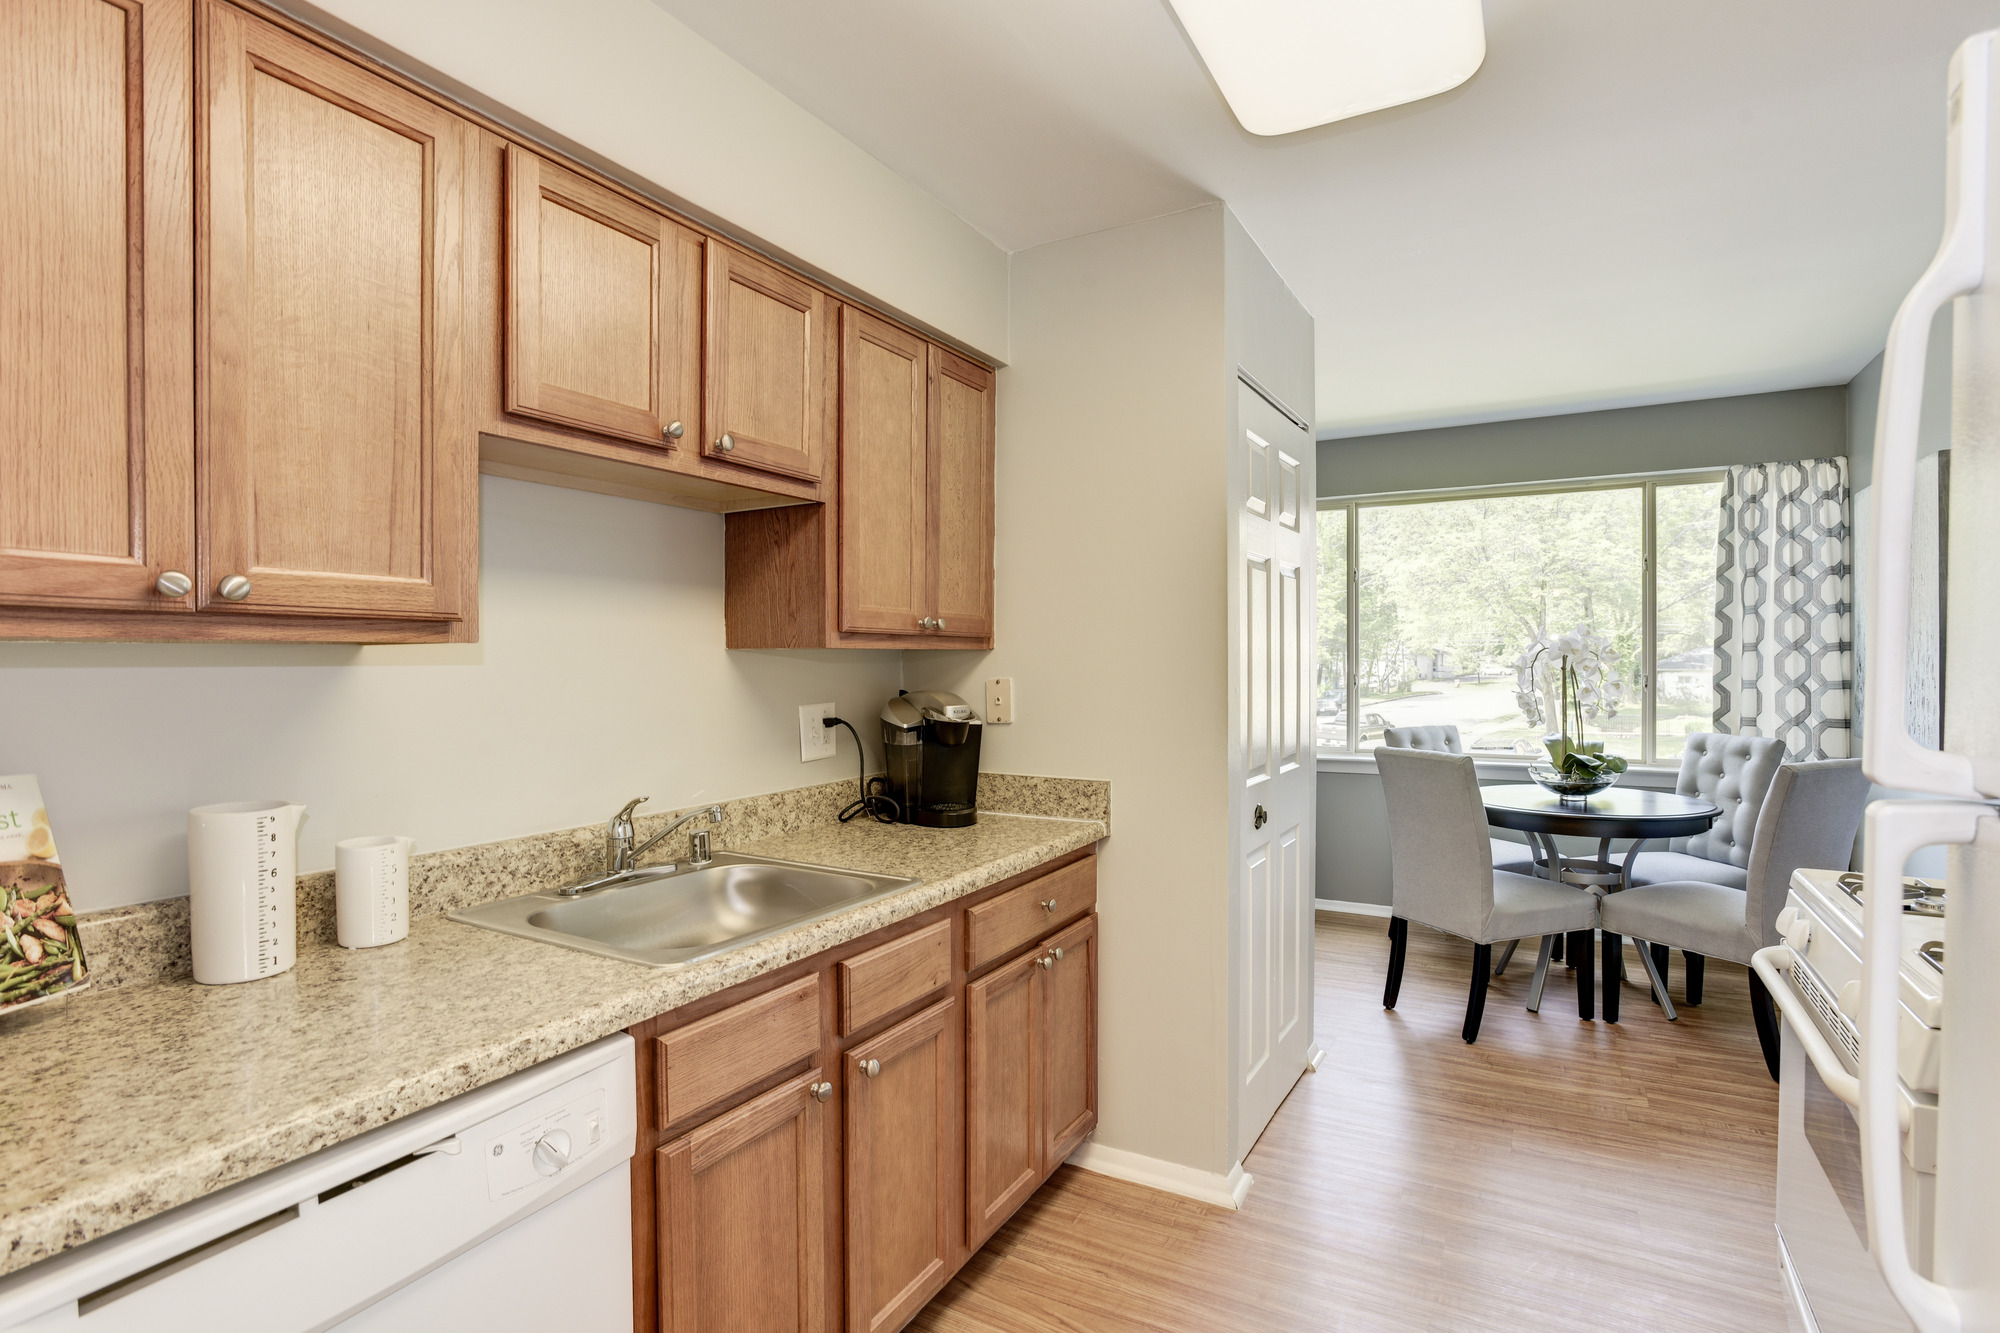 Satyr Hill Apartments in Parkville, MD - Updated Kitchen